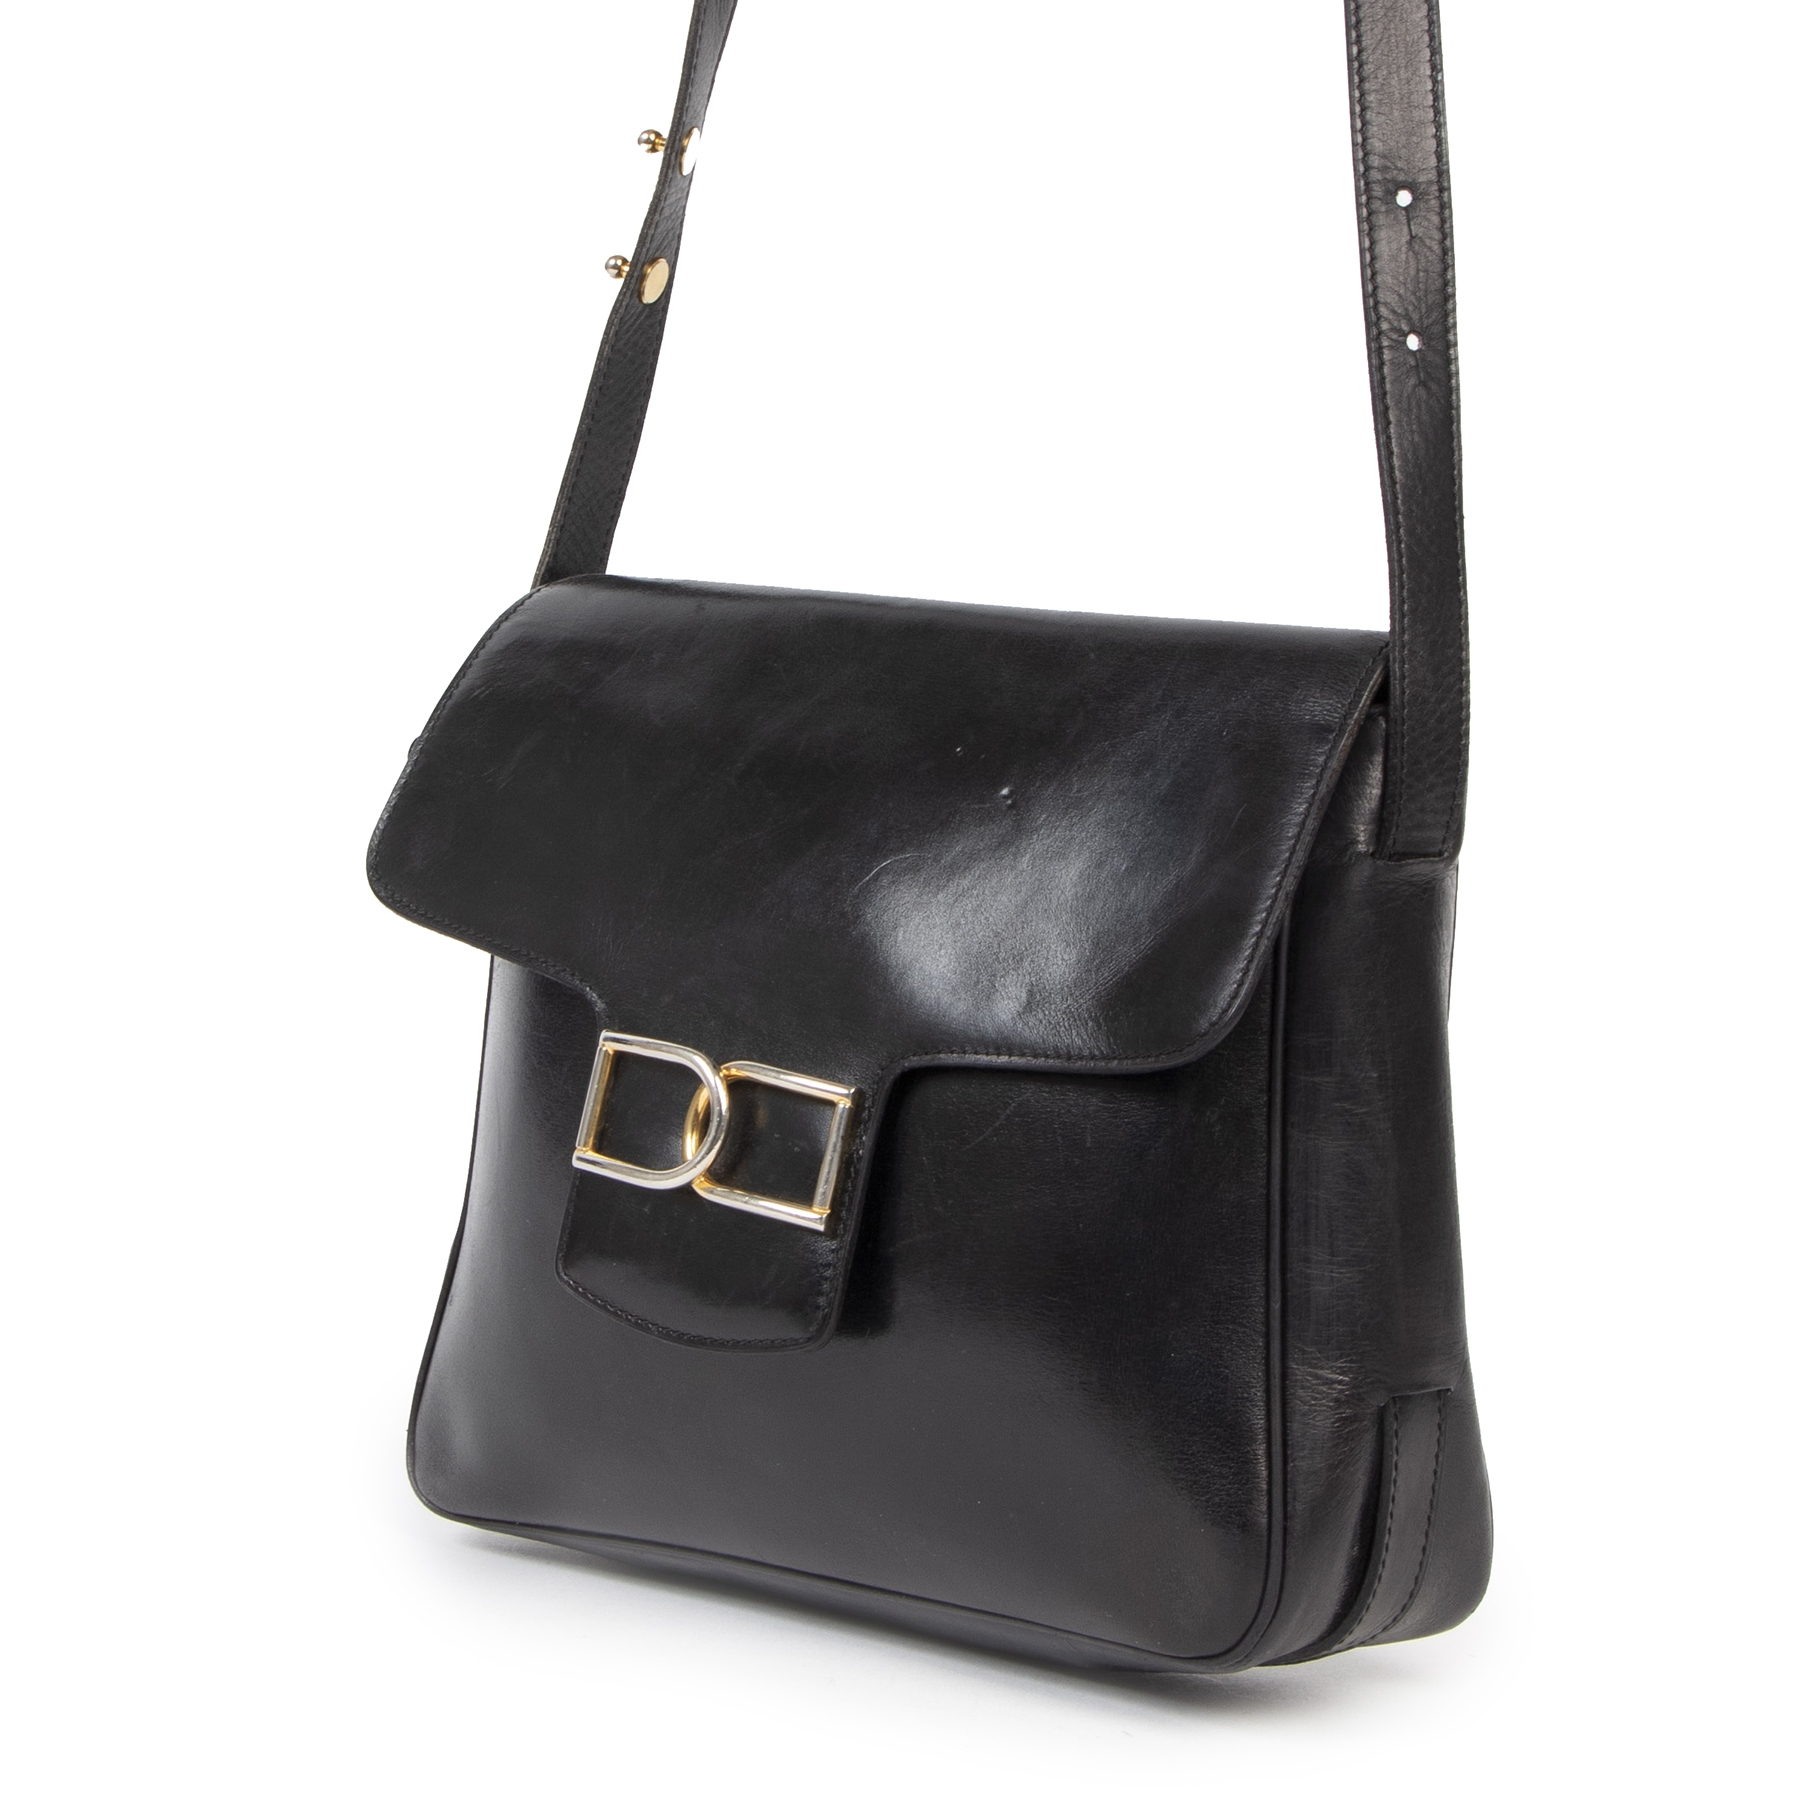 We buy and sell your authntic designer Delvaux Black Smooth Leather Box Bag for the best price online